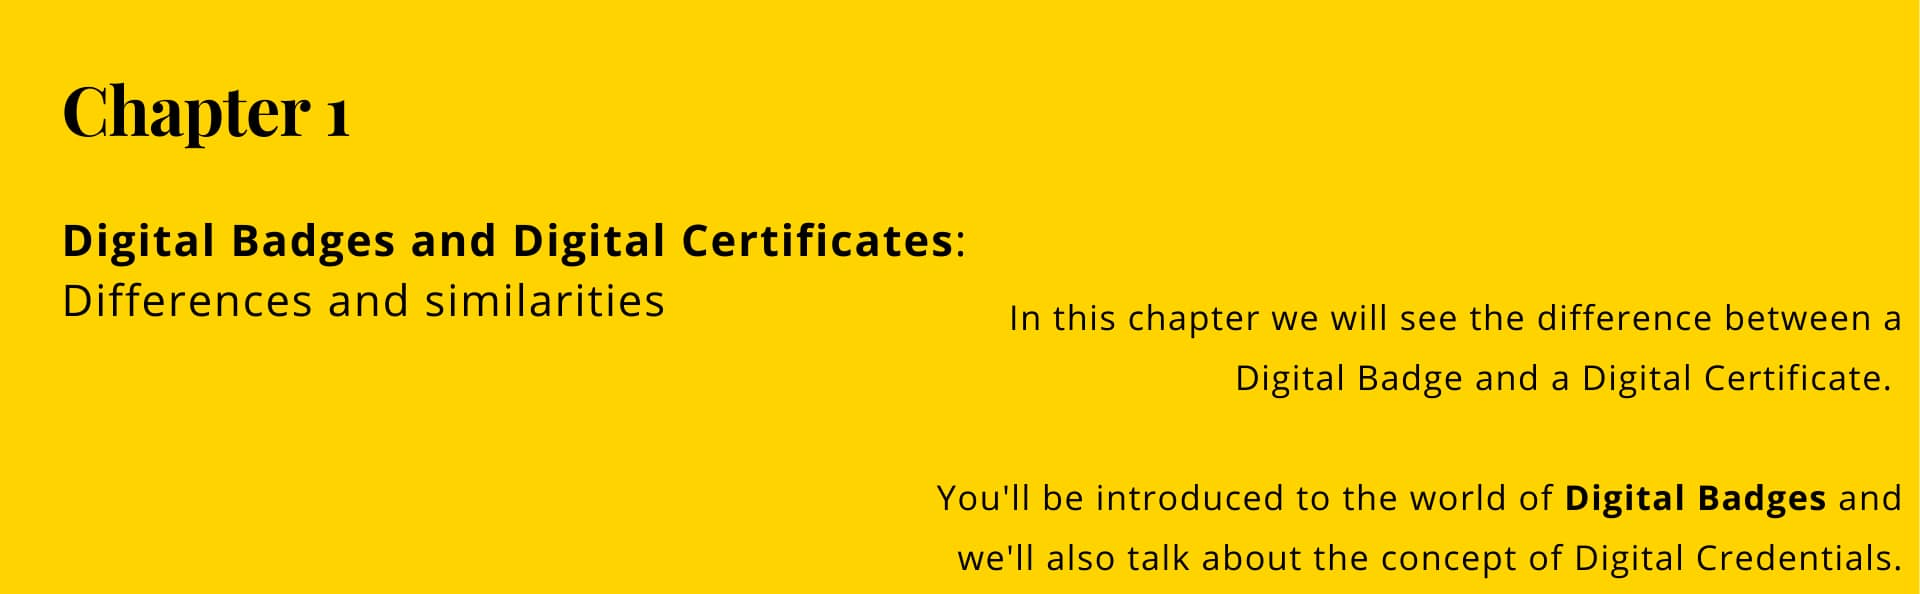 Chapter 1: what are digital badges